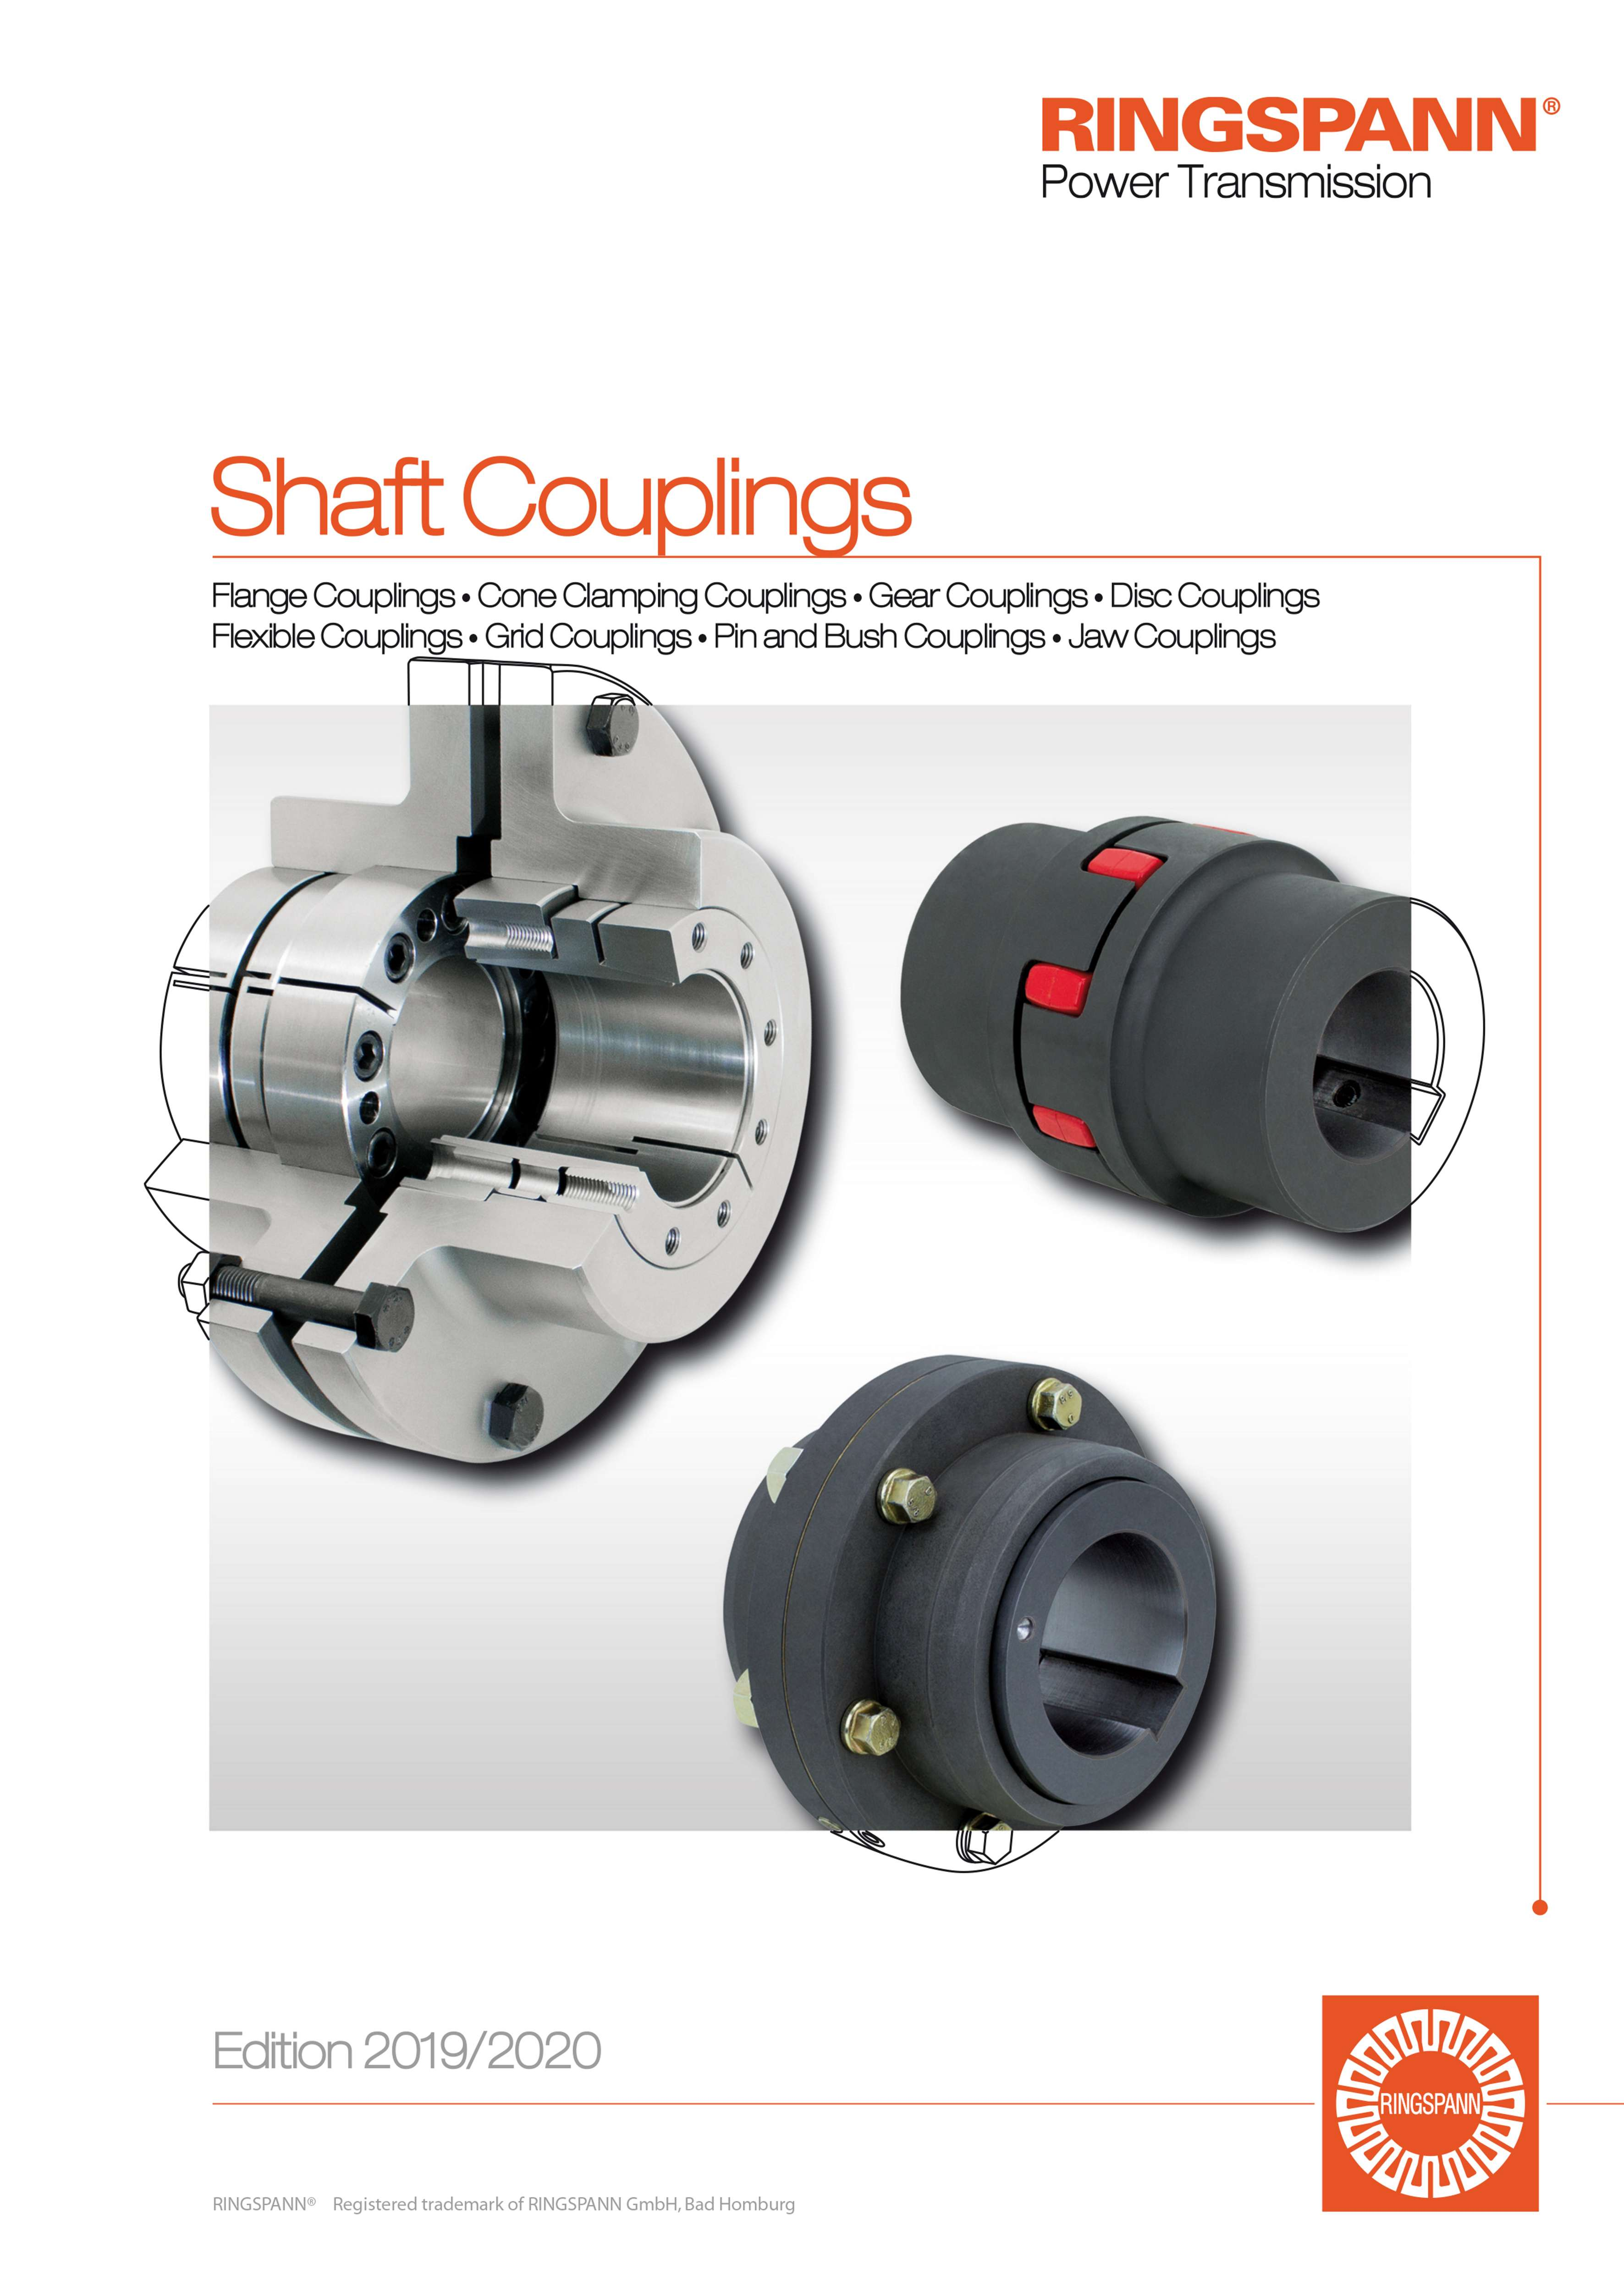 RINGSPANN product catalogue – shaft couplings